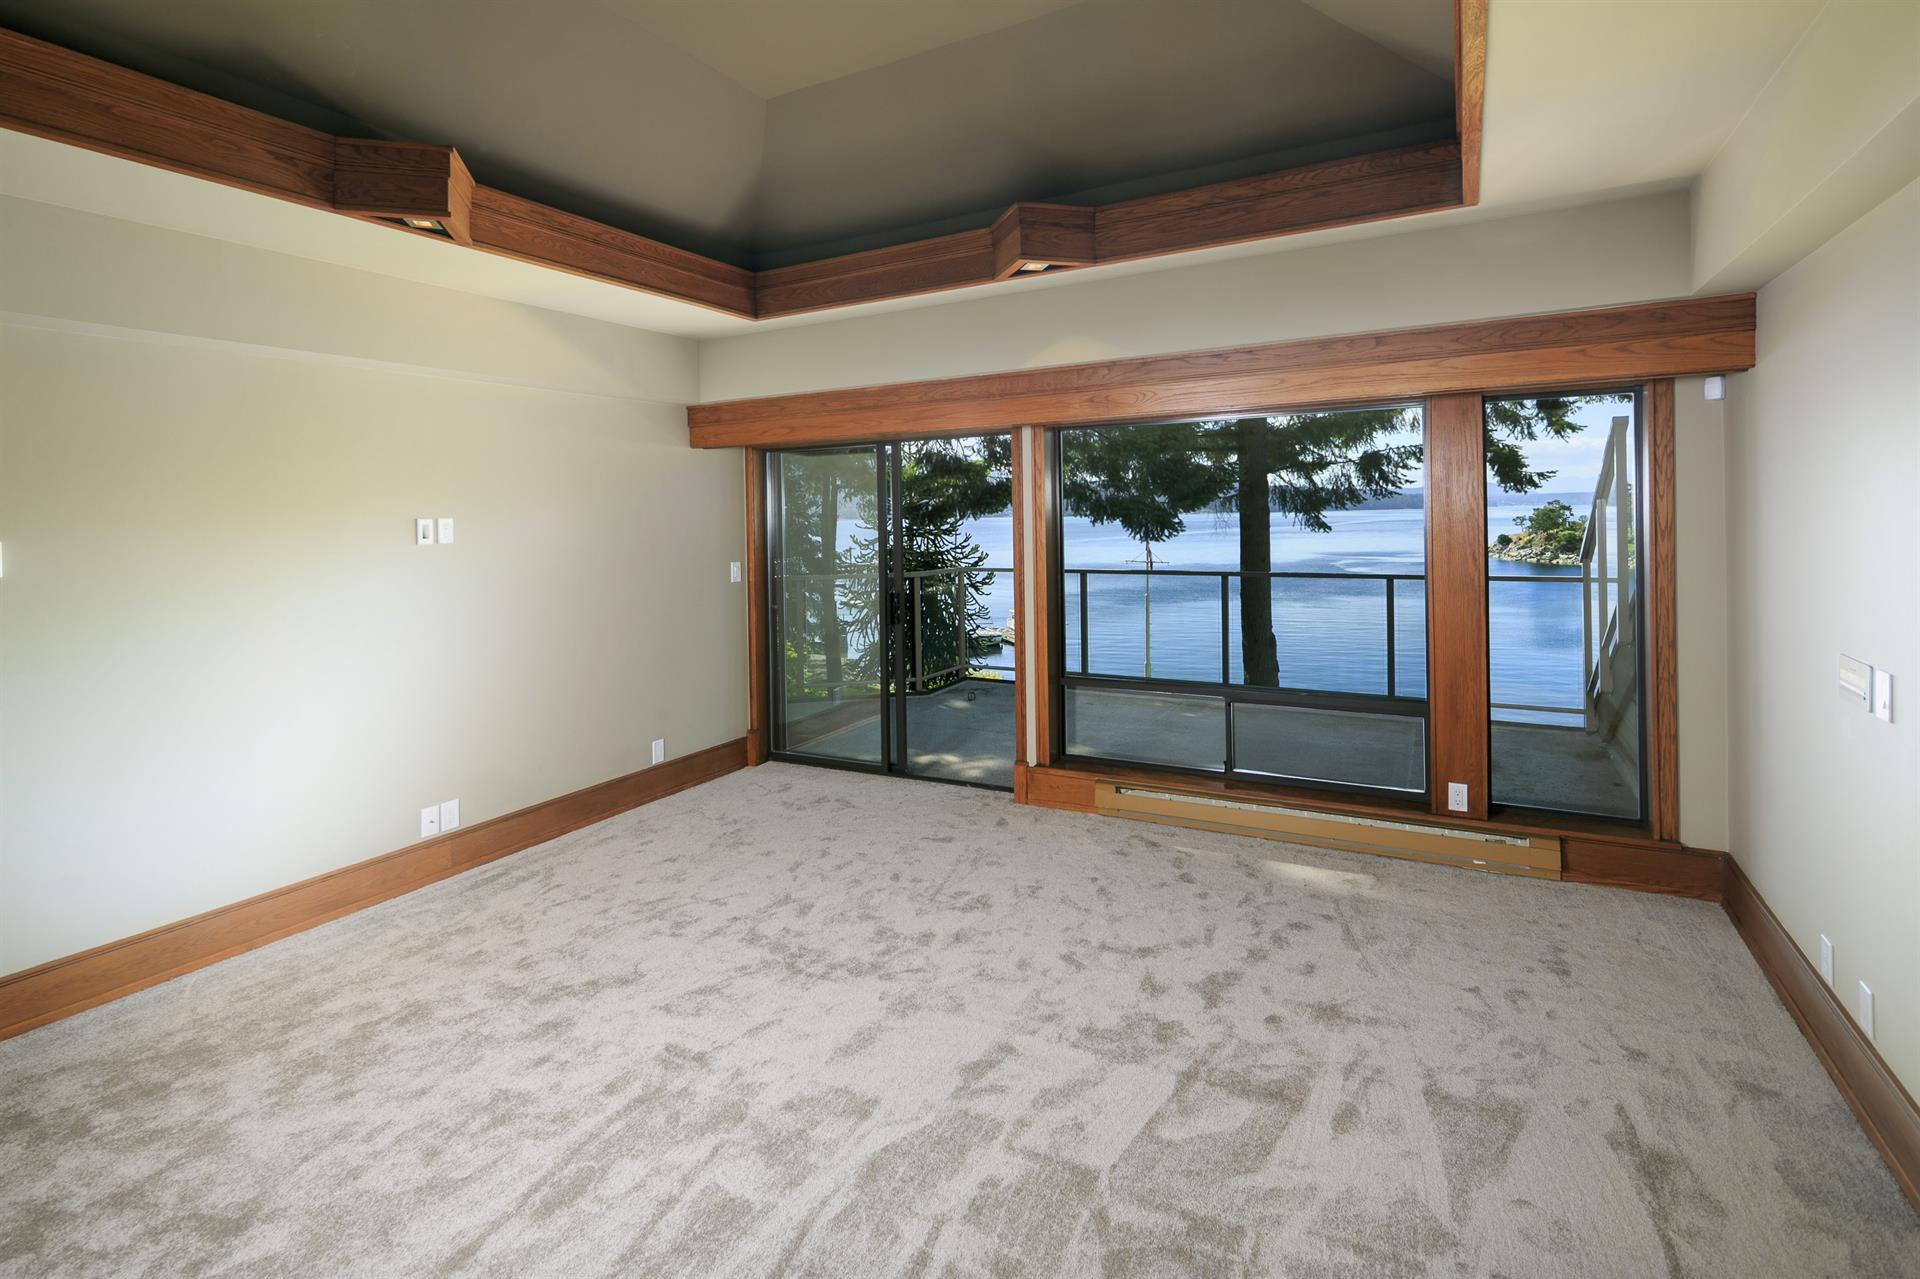 Additional photo for property listing at 568 Senanus Dr Victoria, British Columbia,Canada